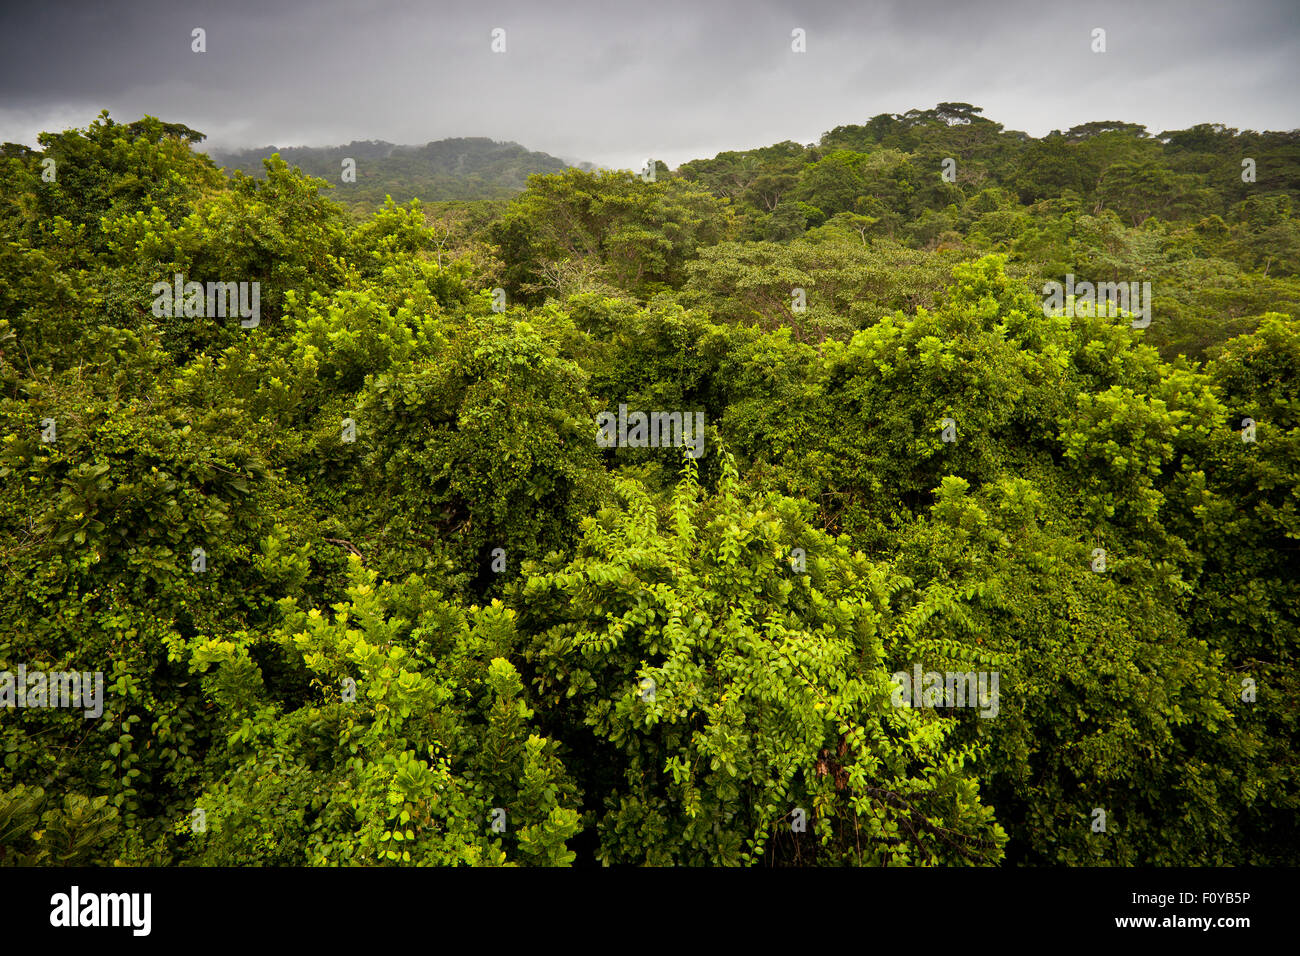 Rainforest canopy in the rainy season with new green growth in Soberania national park, Republic of Panama. - Stock Image